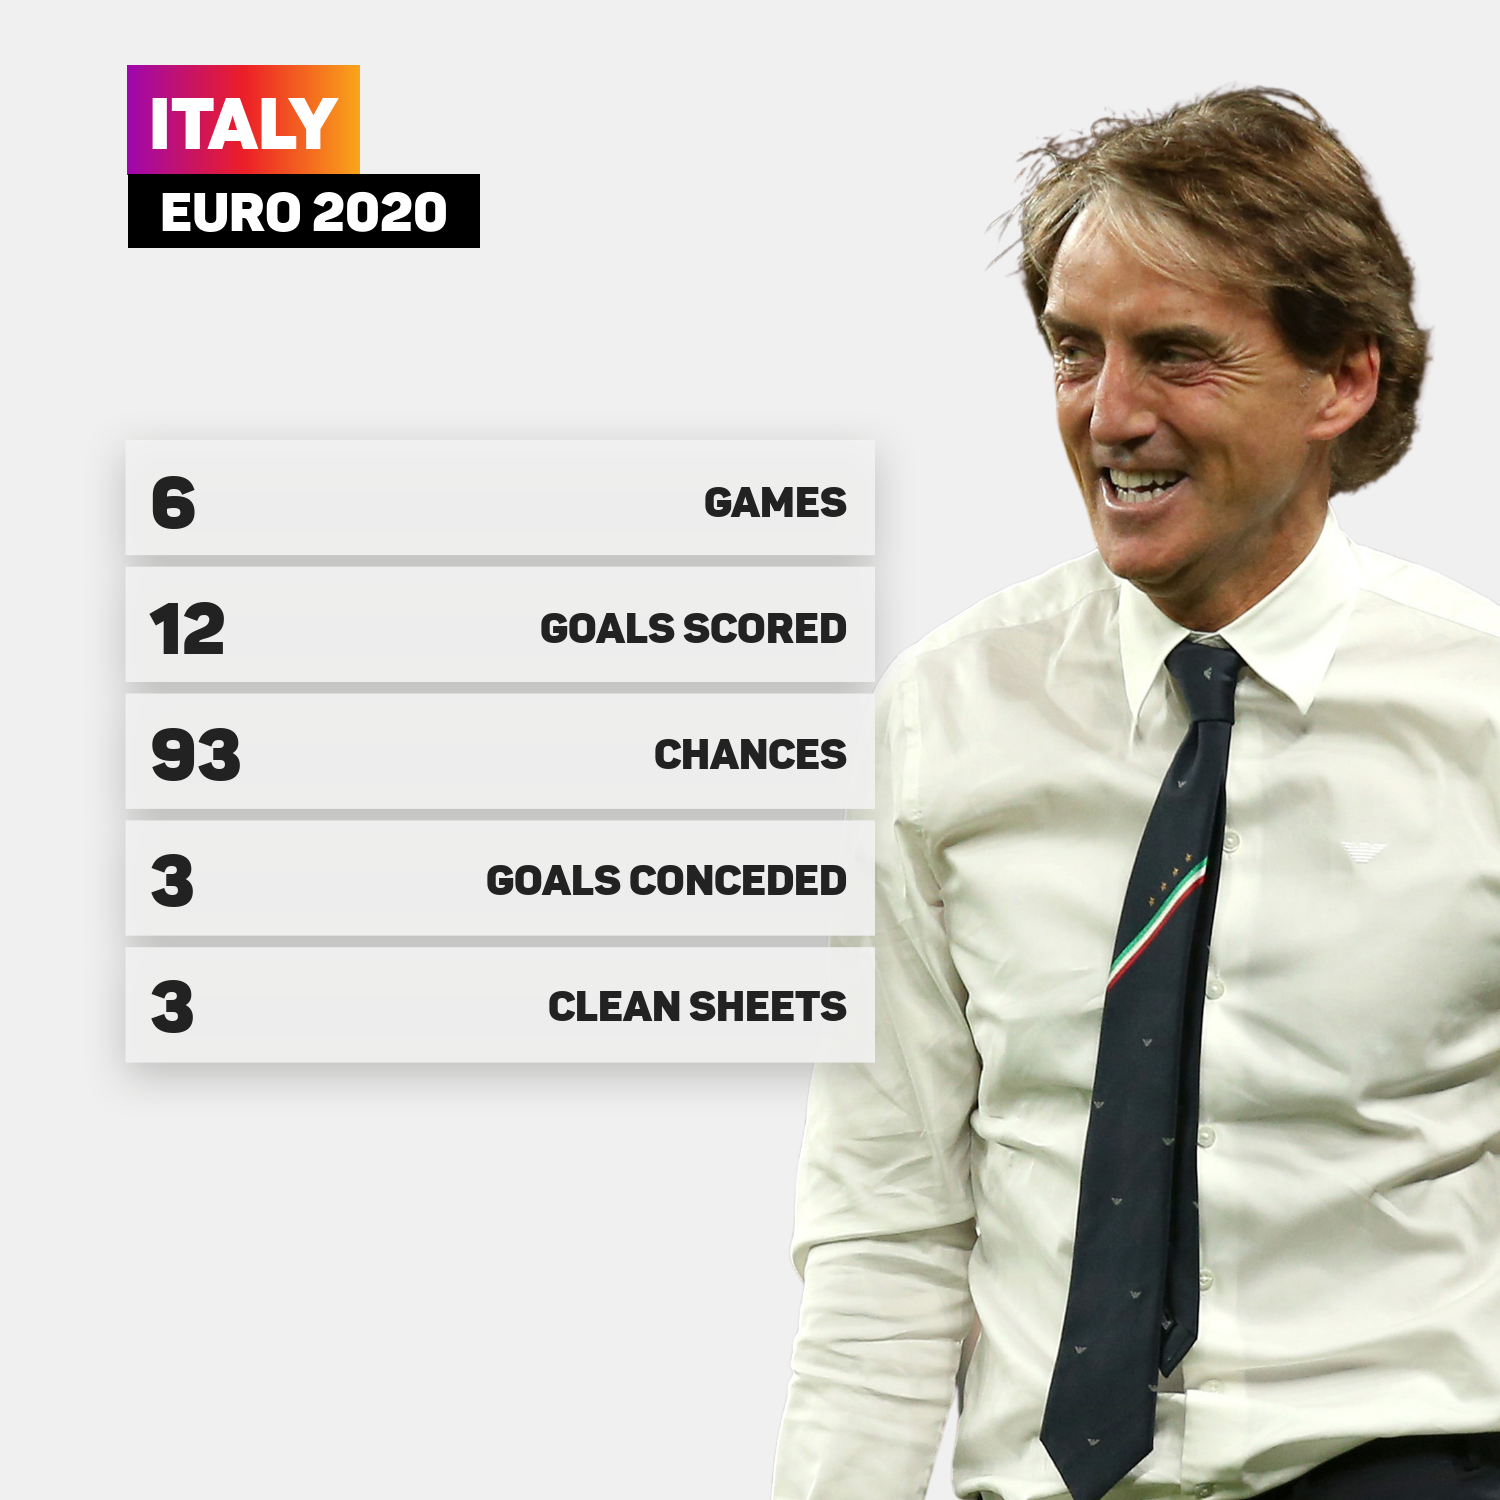 Italy have been brilliant at Euro 2020